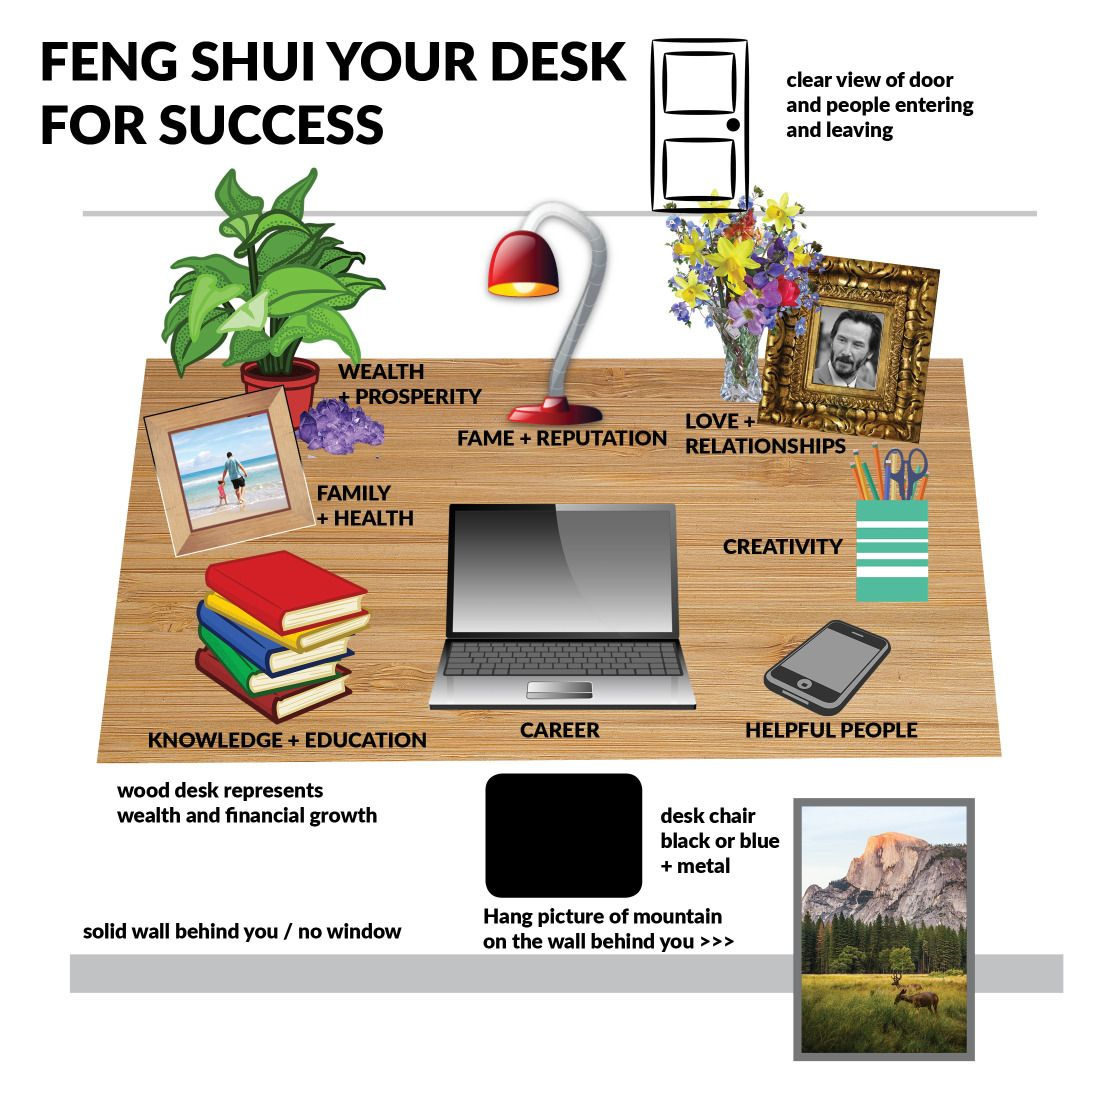 Feng Shui Your Desk For Success In 2020 (With Images